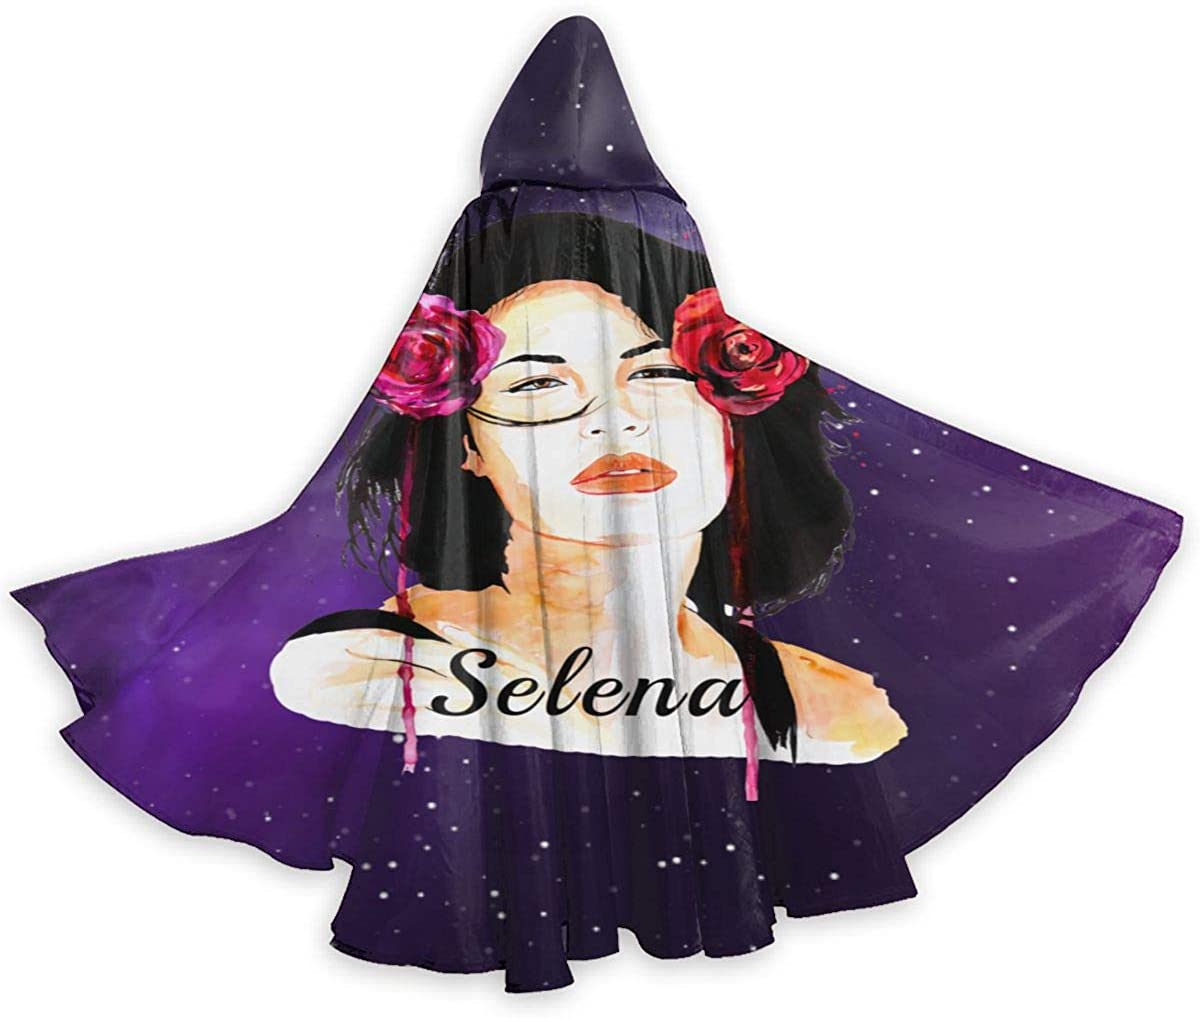 Shxjdthafa Selena Quintanilla Youth Adult Womens Men Unisex Costumes Capes Cloak with Hood for Halloween Party